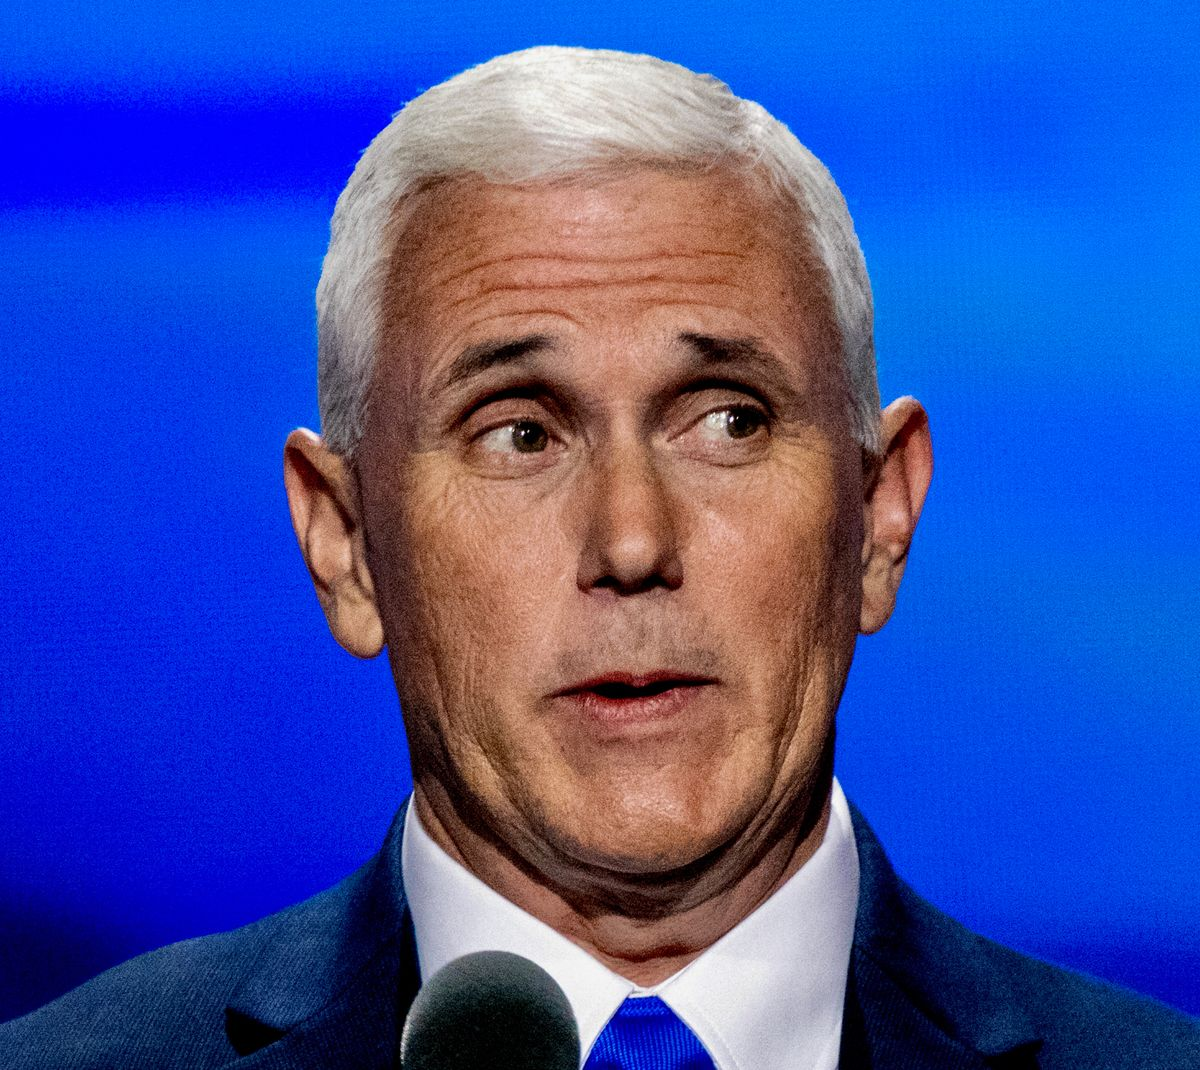 'Does he have Stockholm syndrome?': Ex-Pence aide lashes out at him for siding with his 'would-be murderers'